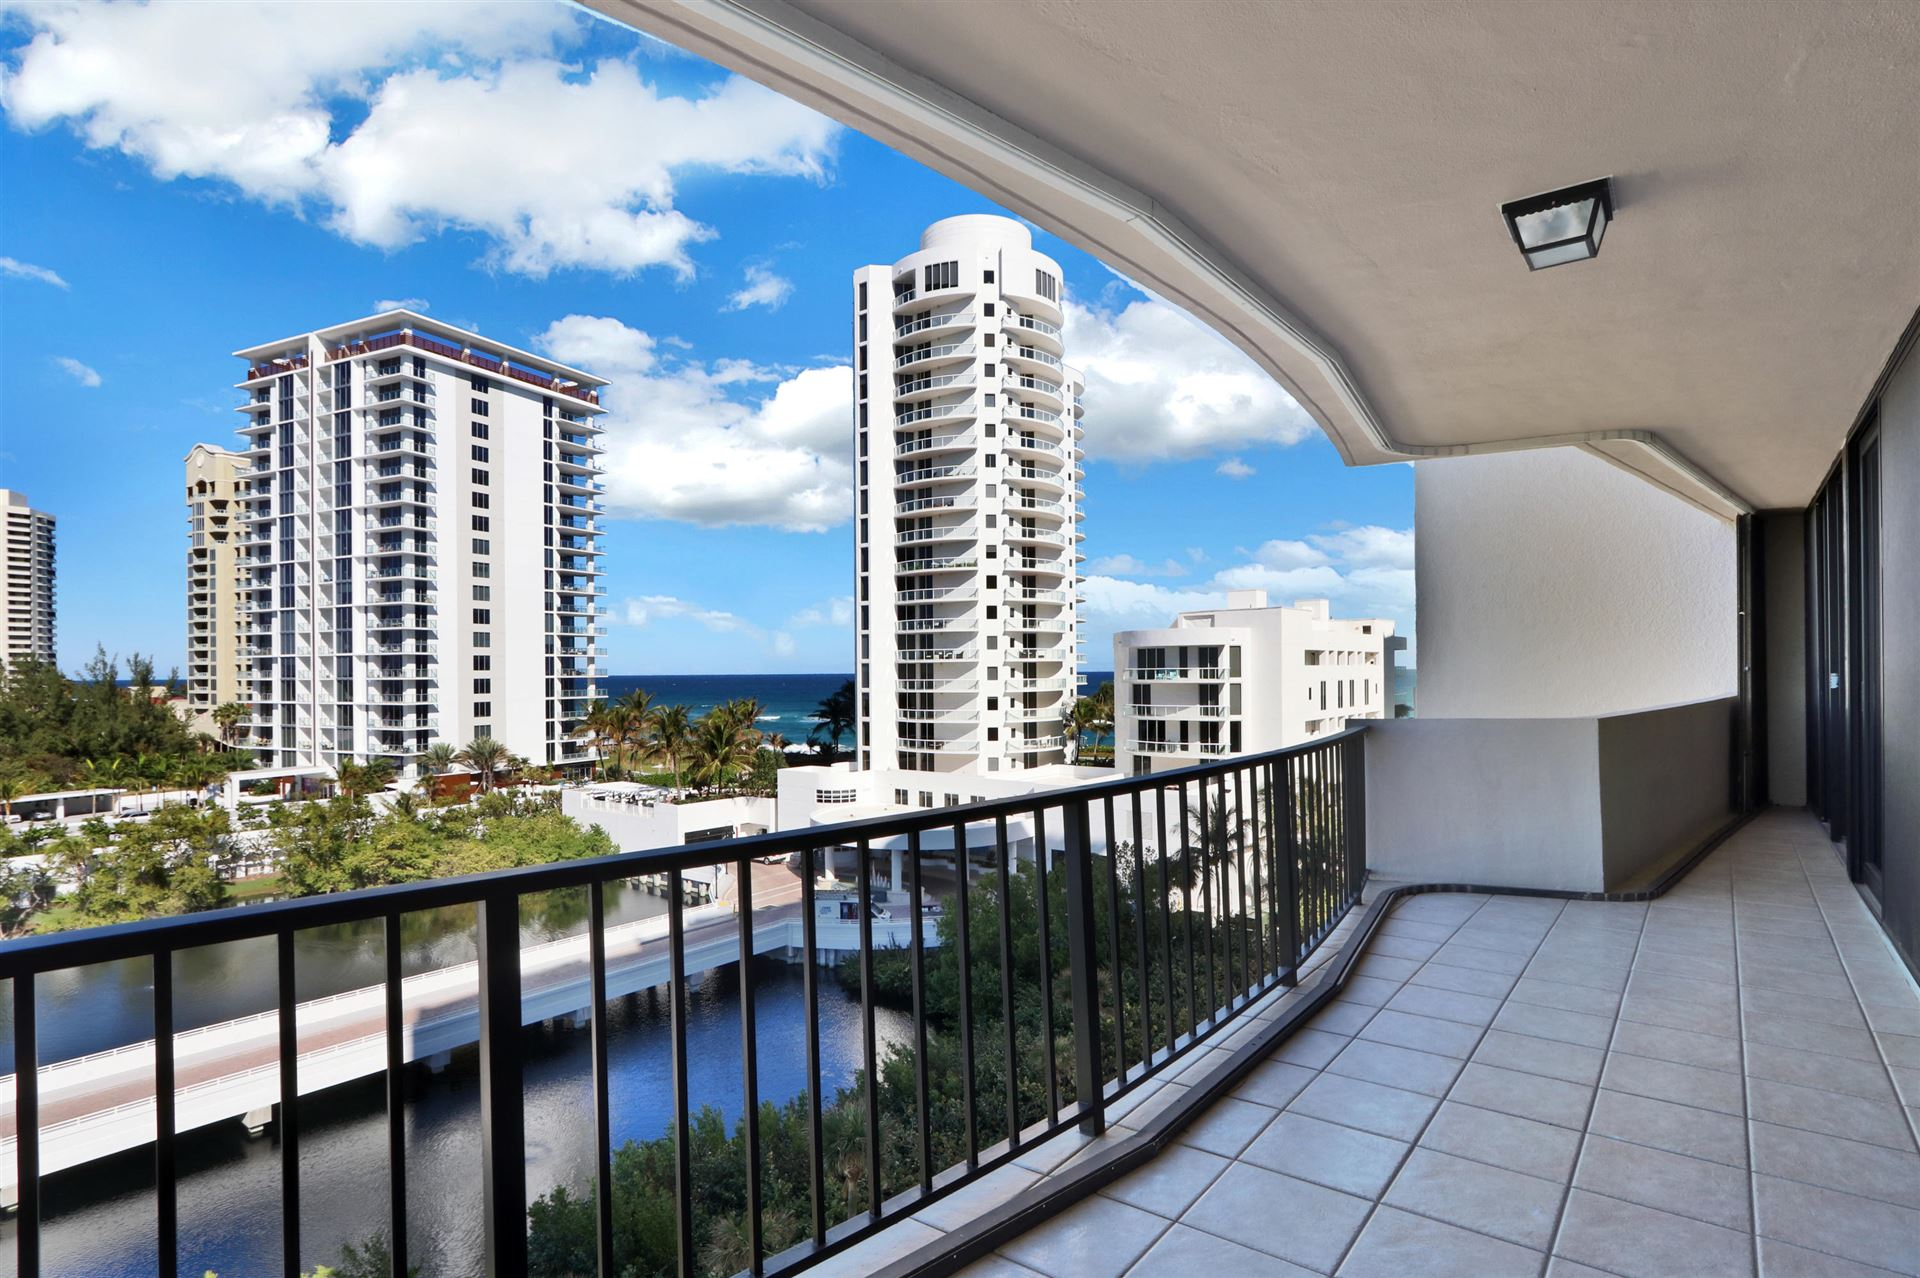 Photo of 4200 N Ocean Drive #2-705, Singer Island, FL 33404 (MLS # RX-10675473)